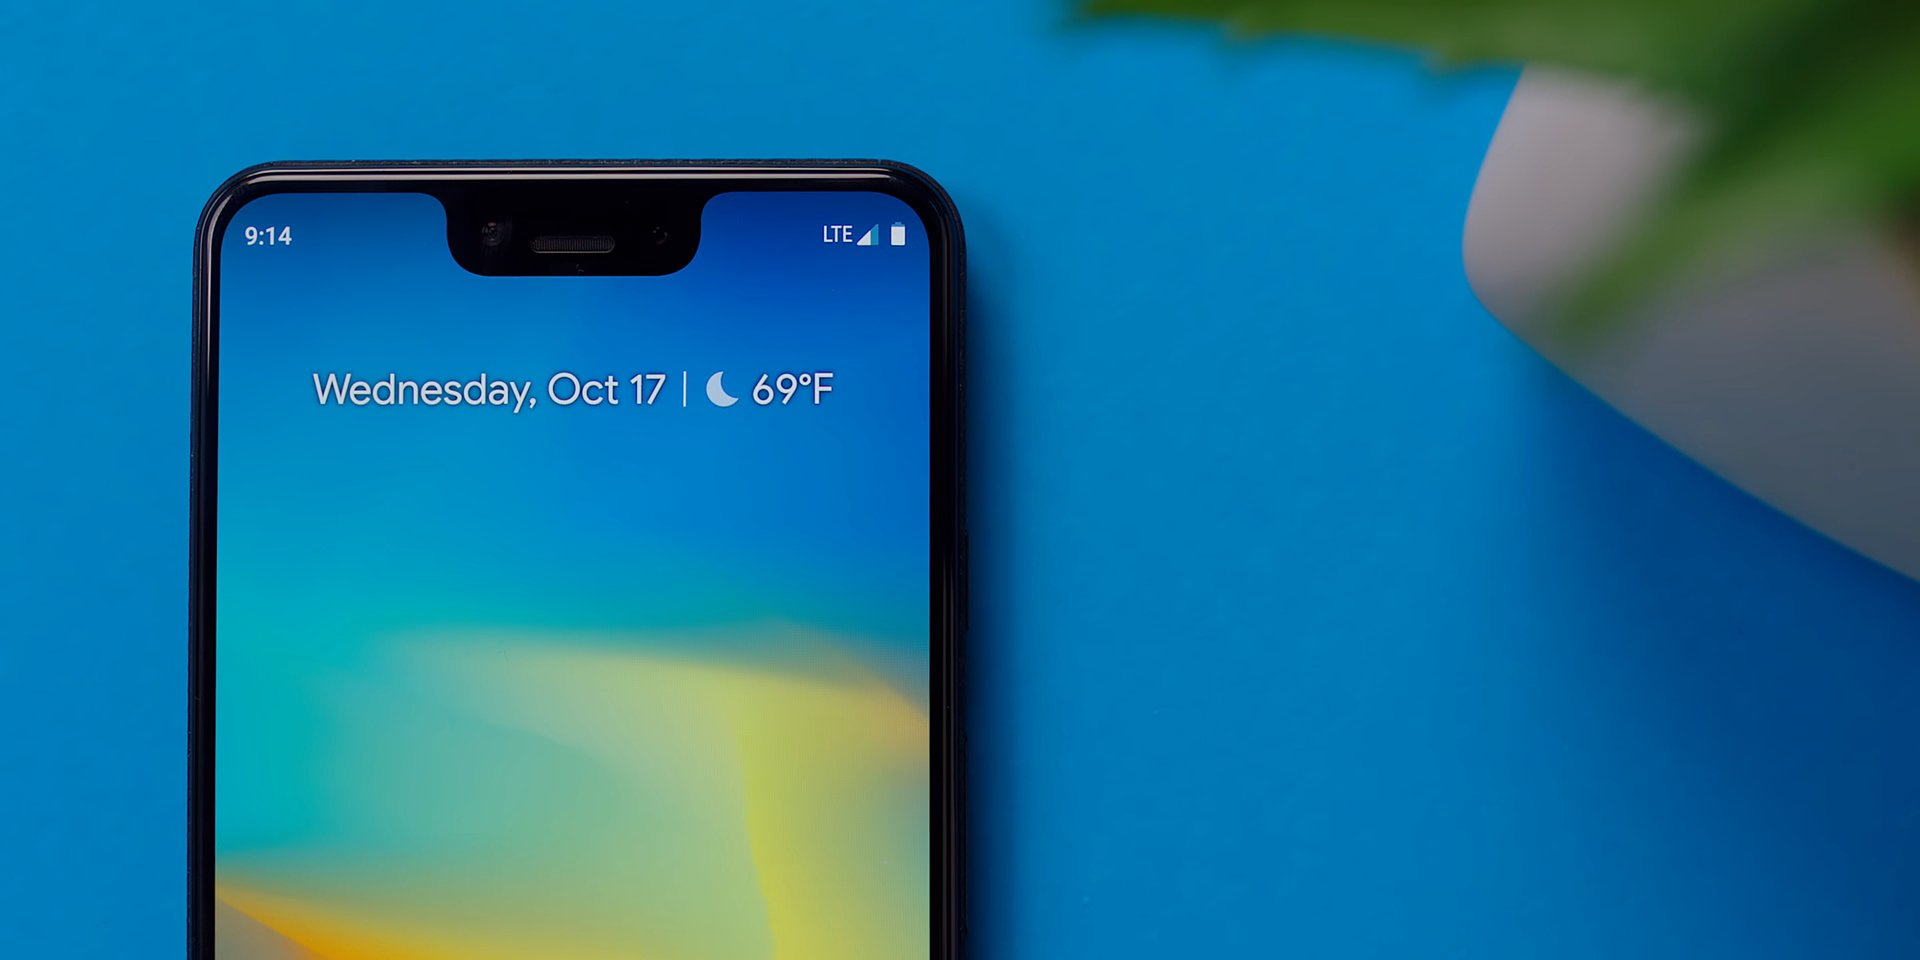 Google Pixel 3 and Pixel 3 XL are finally available for purchase